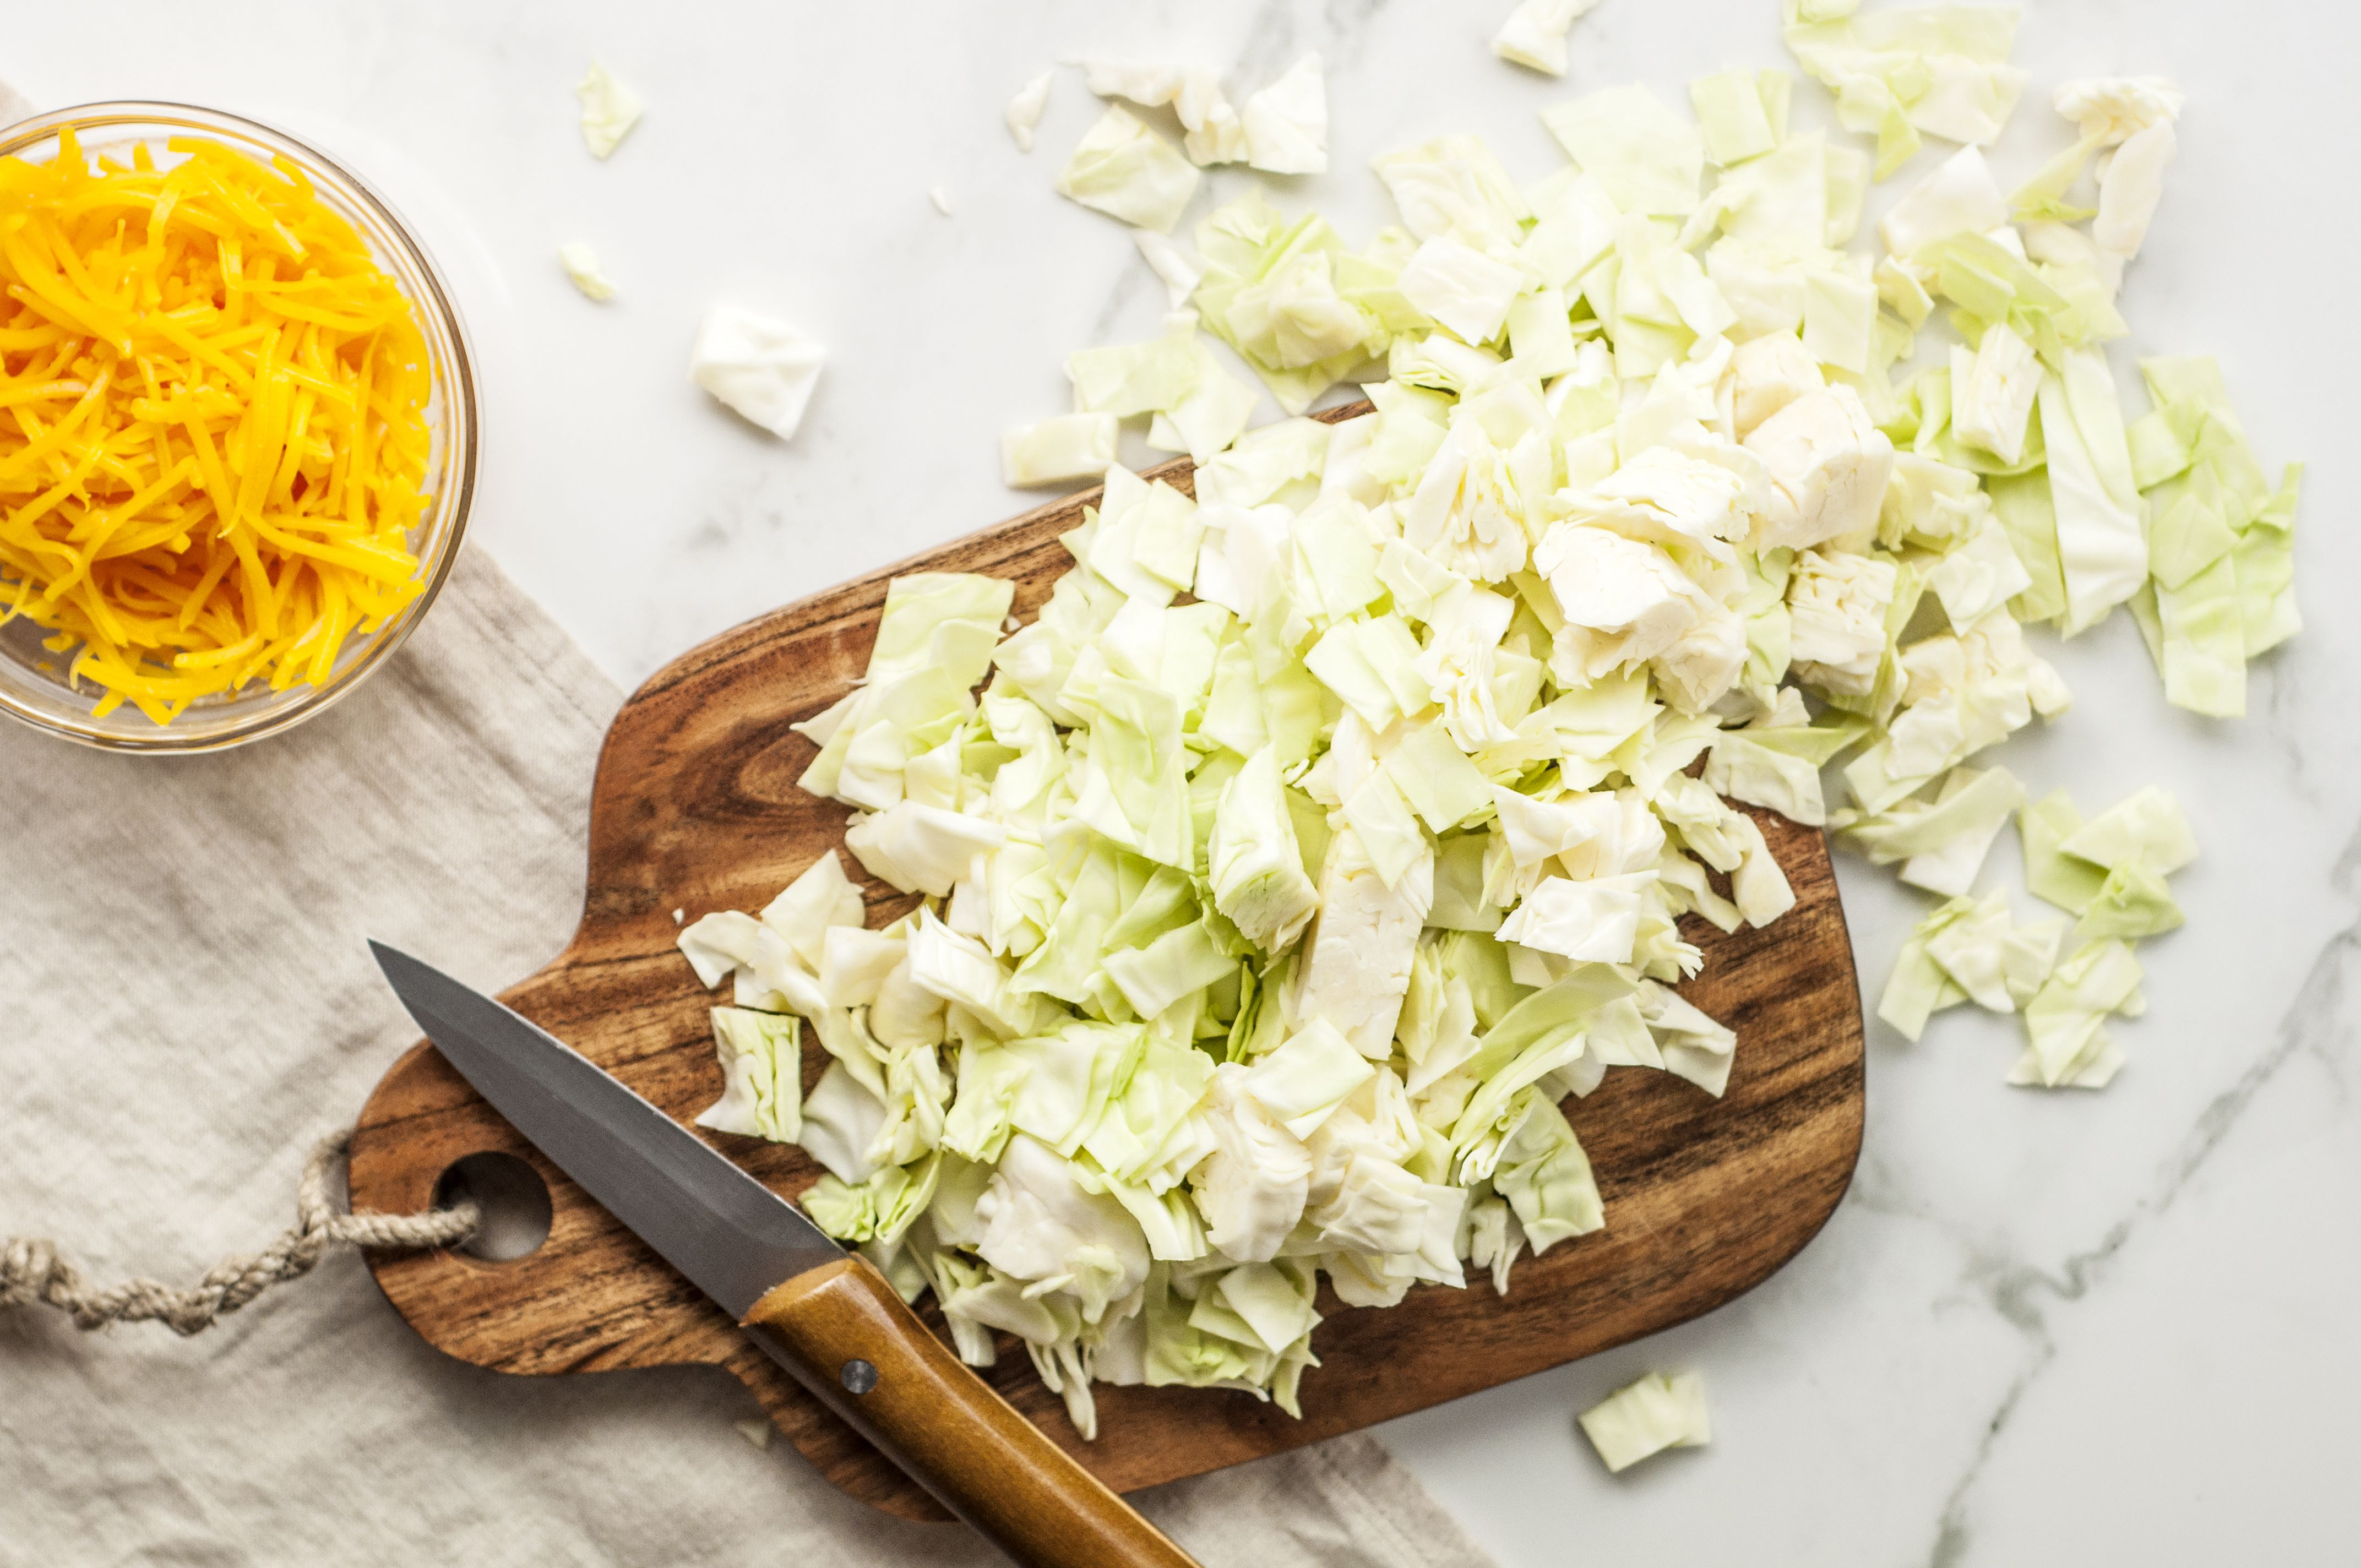 Chopped cabbage for casserole